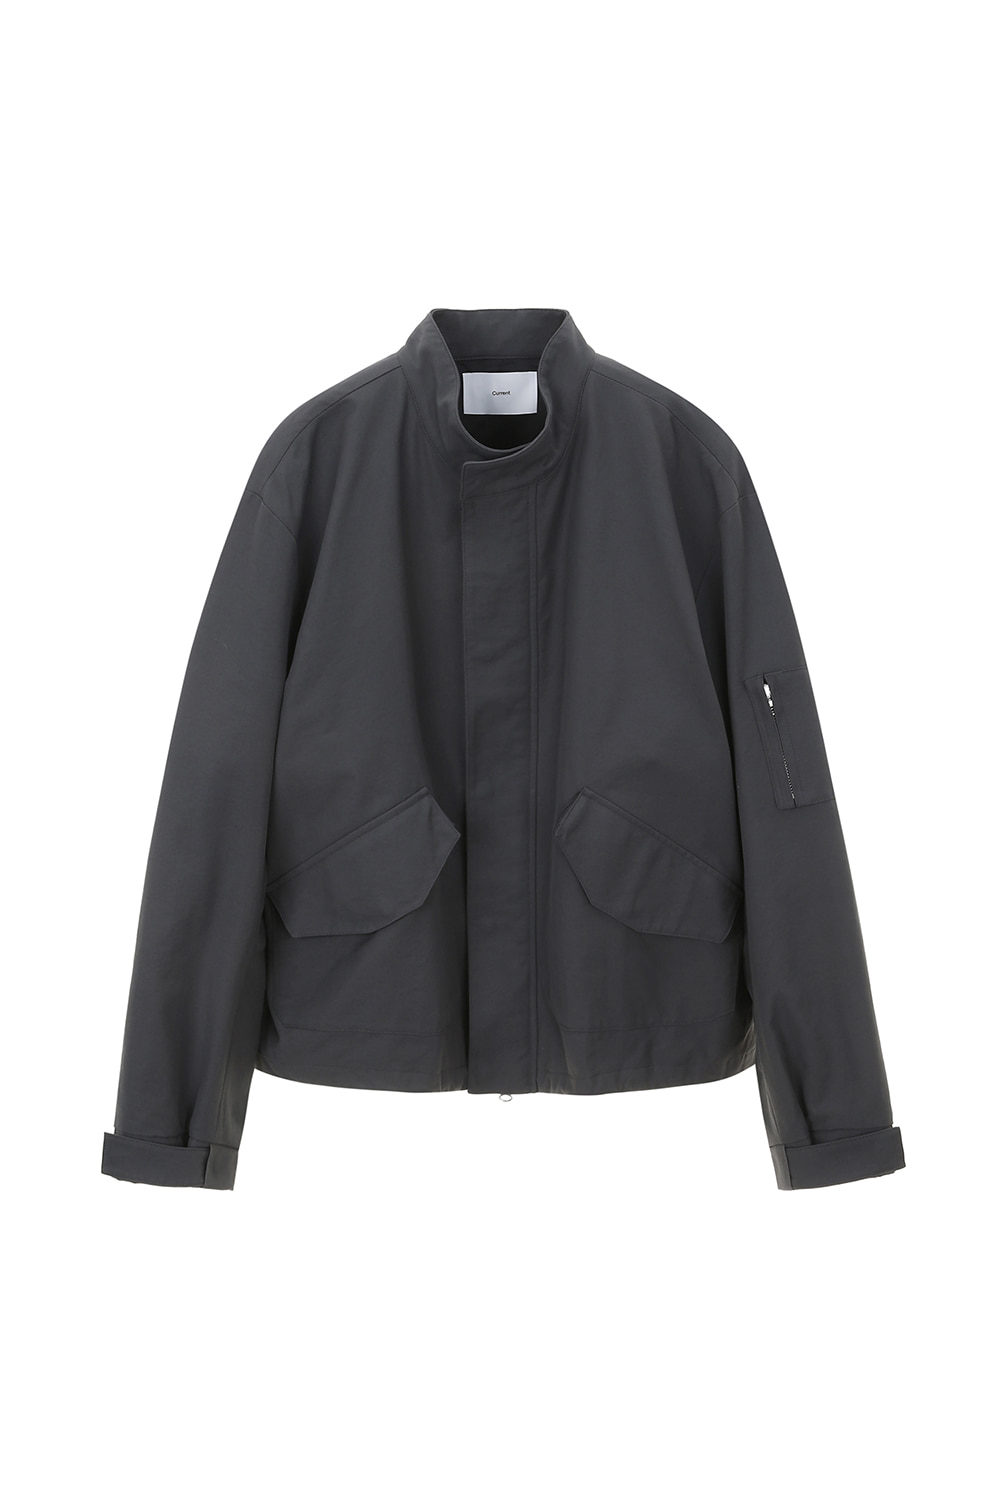 Military Jacket Men [Charcoal Gray]